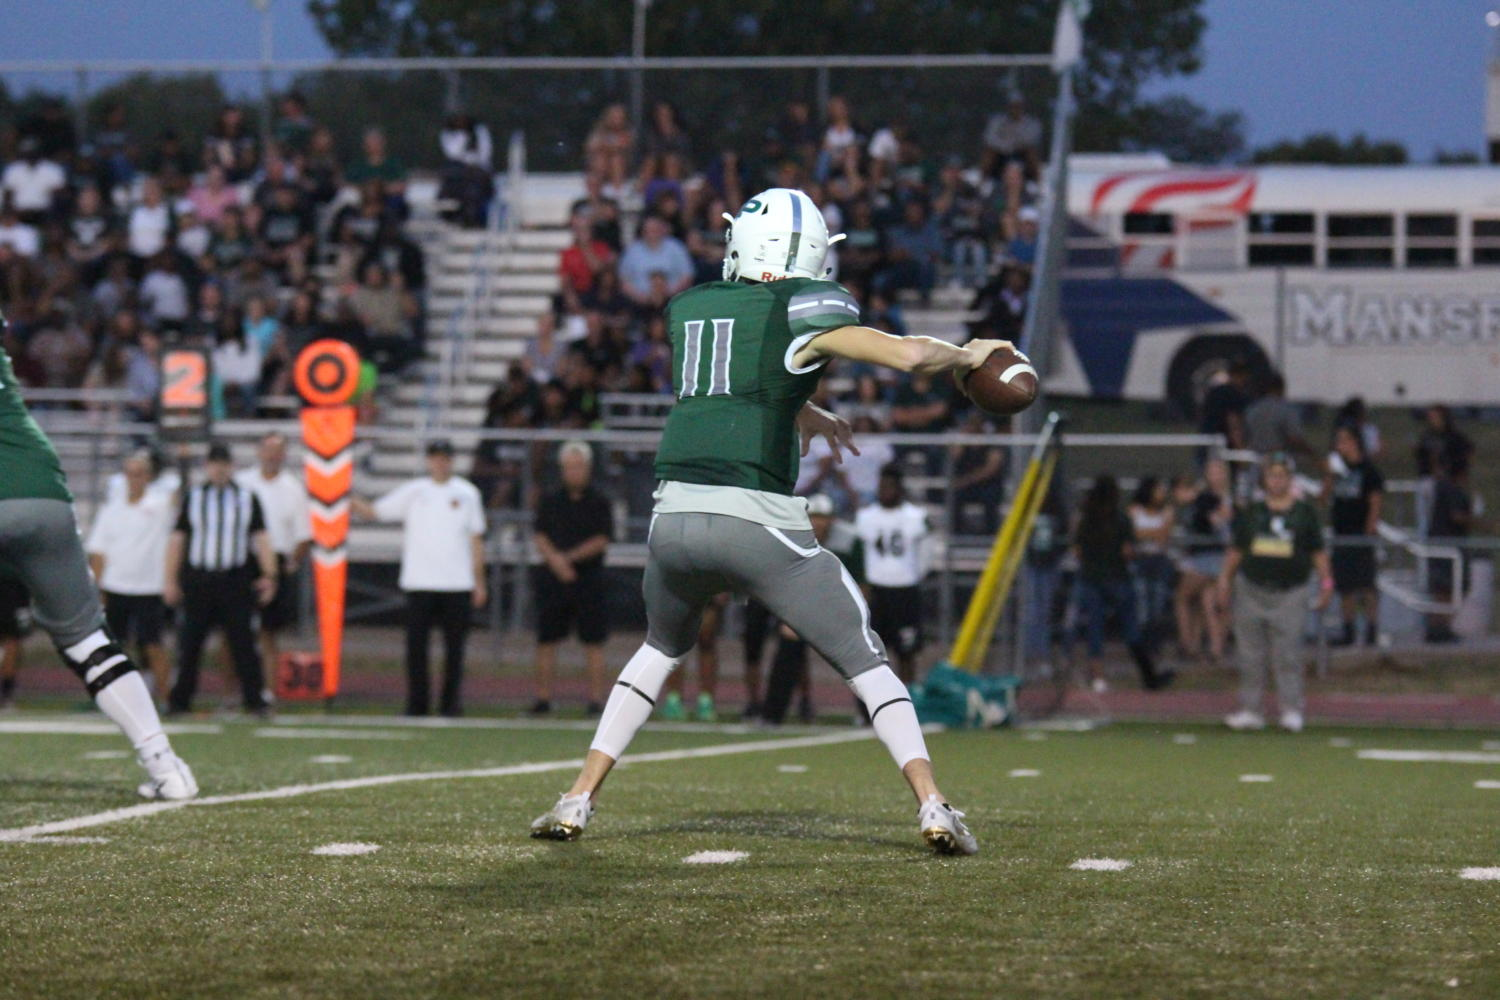 Keegan+Shoemaker+%2811%29+throws+a+pass+against+Mansfield+Lake+Ridge+on+September+8th%2C+2017.+Shoemaker+threw+for+2+touchdown+passes+against+Frisco+Liberty+on+September+15th%2C+2017.